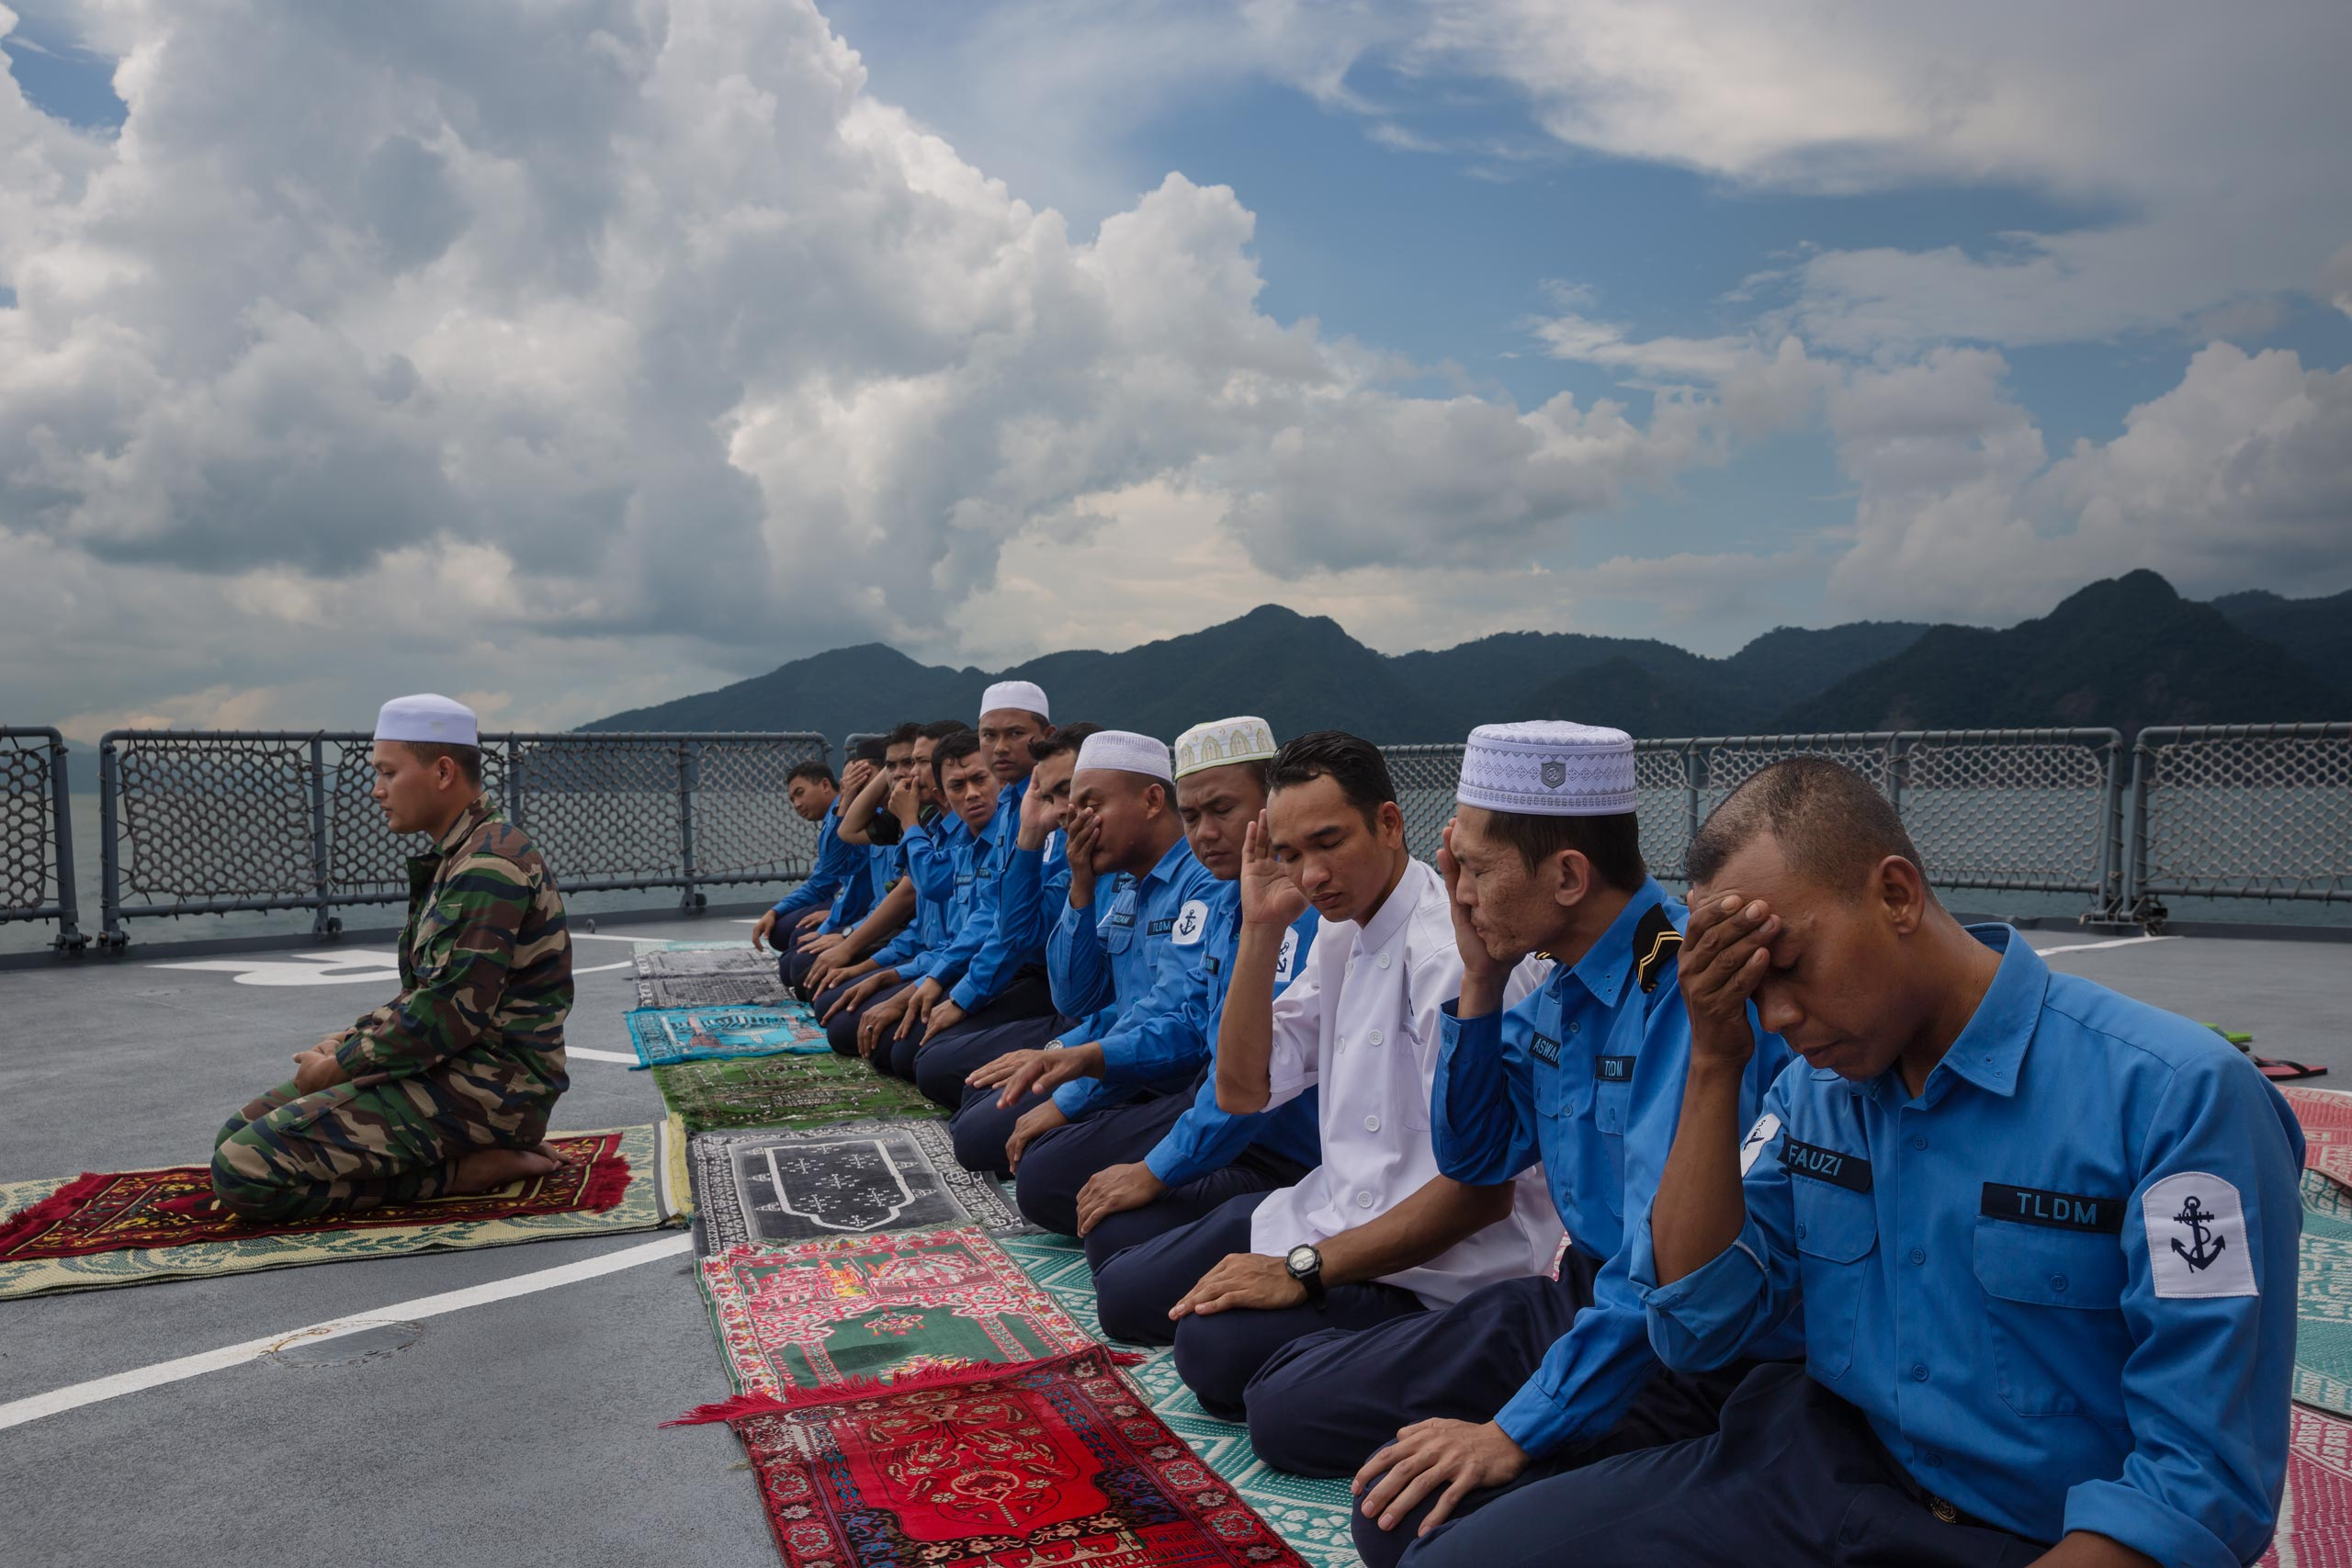 Malaysian Navy officers pray on a navy ship out of Langkawi, an island in the Andaman Sea. They are on routine patrol looking for boats with Rohingya refugees in waters neighboring Thailand.